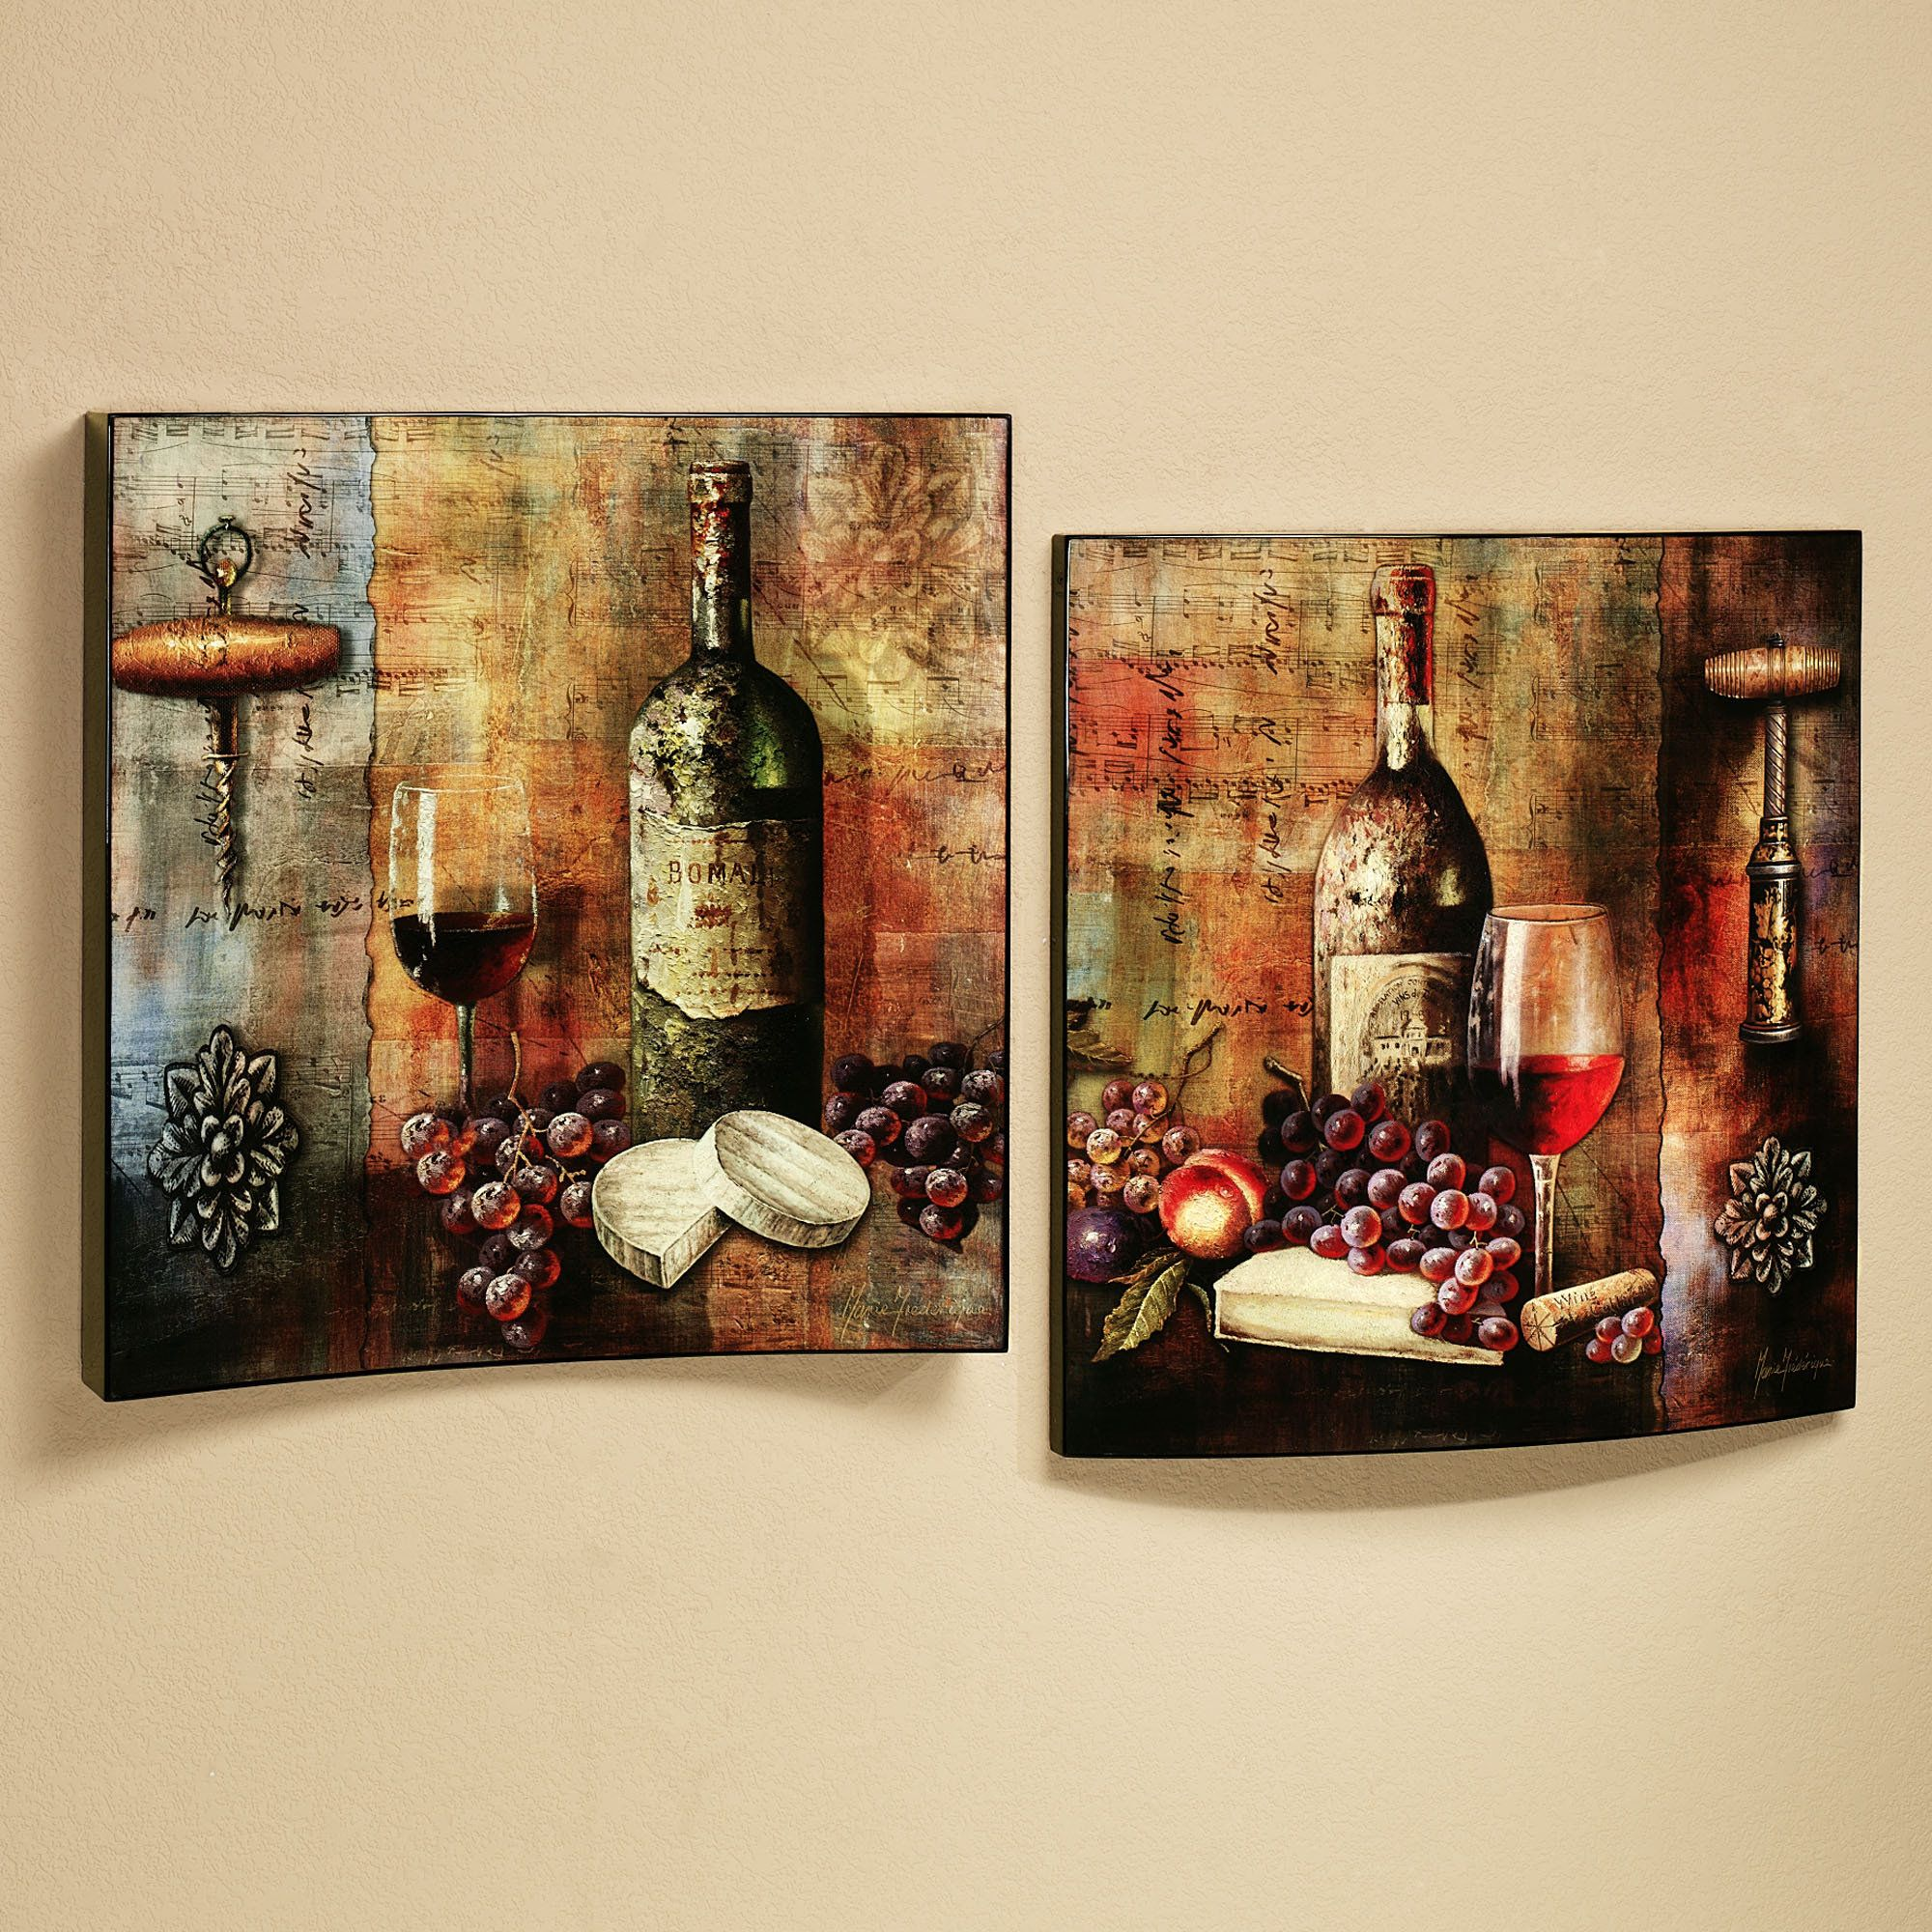 2b97fb3dcf9a74e599d011392f321f51 Napa Vineyard Kitchen Ideas on vineyard themed kitchen, vineyard kitchen decor, vineyard dining room ideas, vineyard kitchen collection, vineyard inspired kitchen, vineyard wine theme kitchen, vineyard food ideas, vineyard painting ideas, vineyard decorating ideas, vineyard porch ideas,